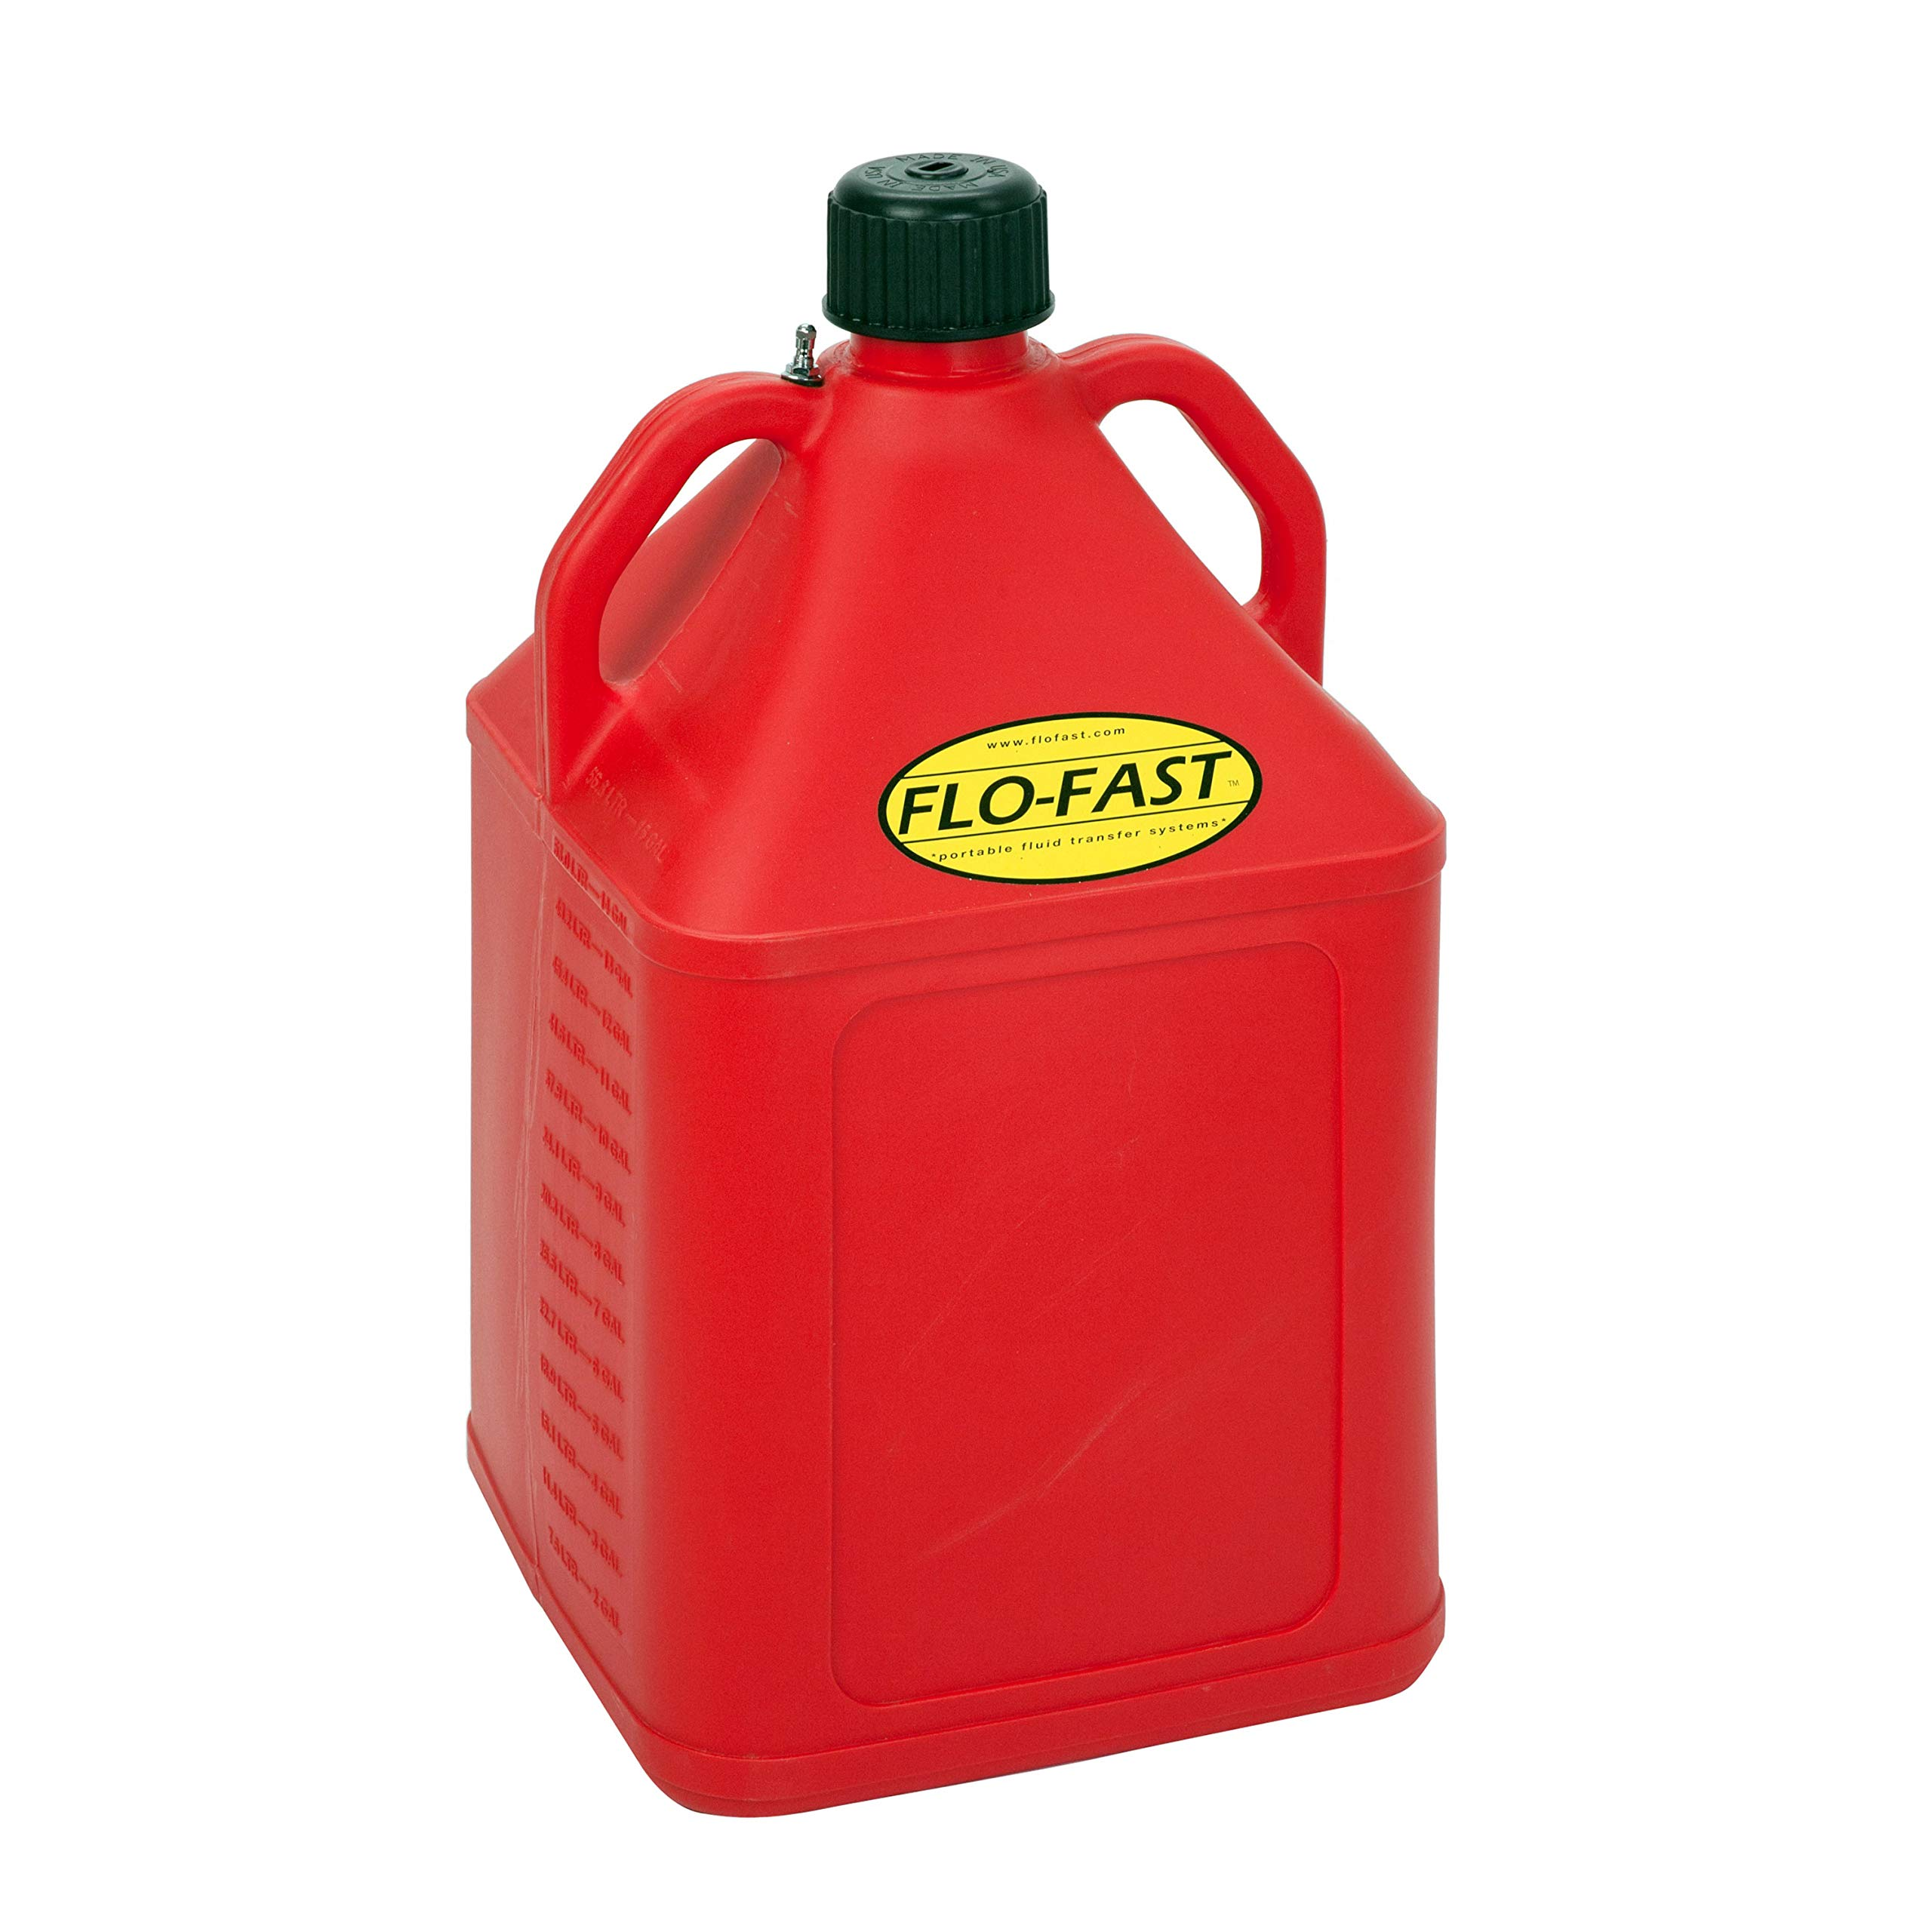 Flo-Fast 1250100-L1 15501 15 Gallon Container by Flo-Fast (Image #1)